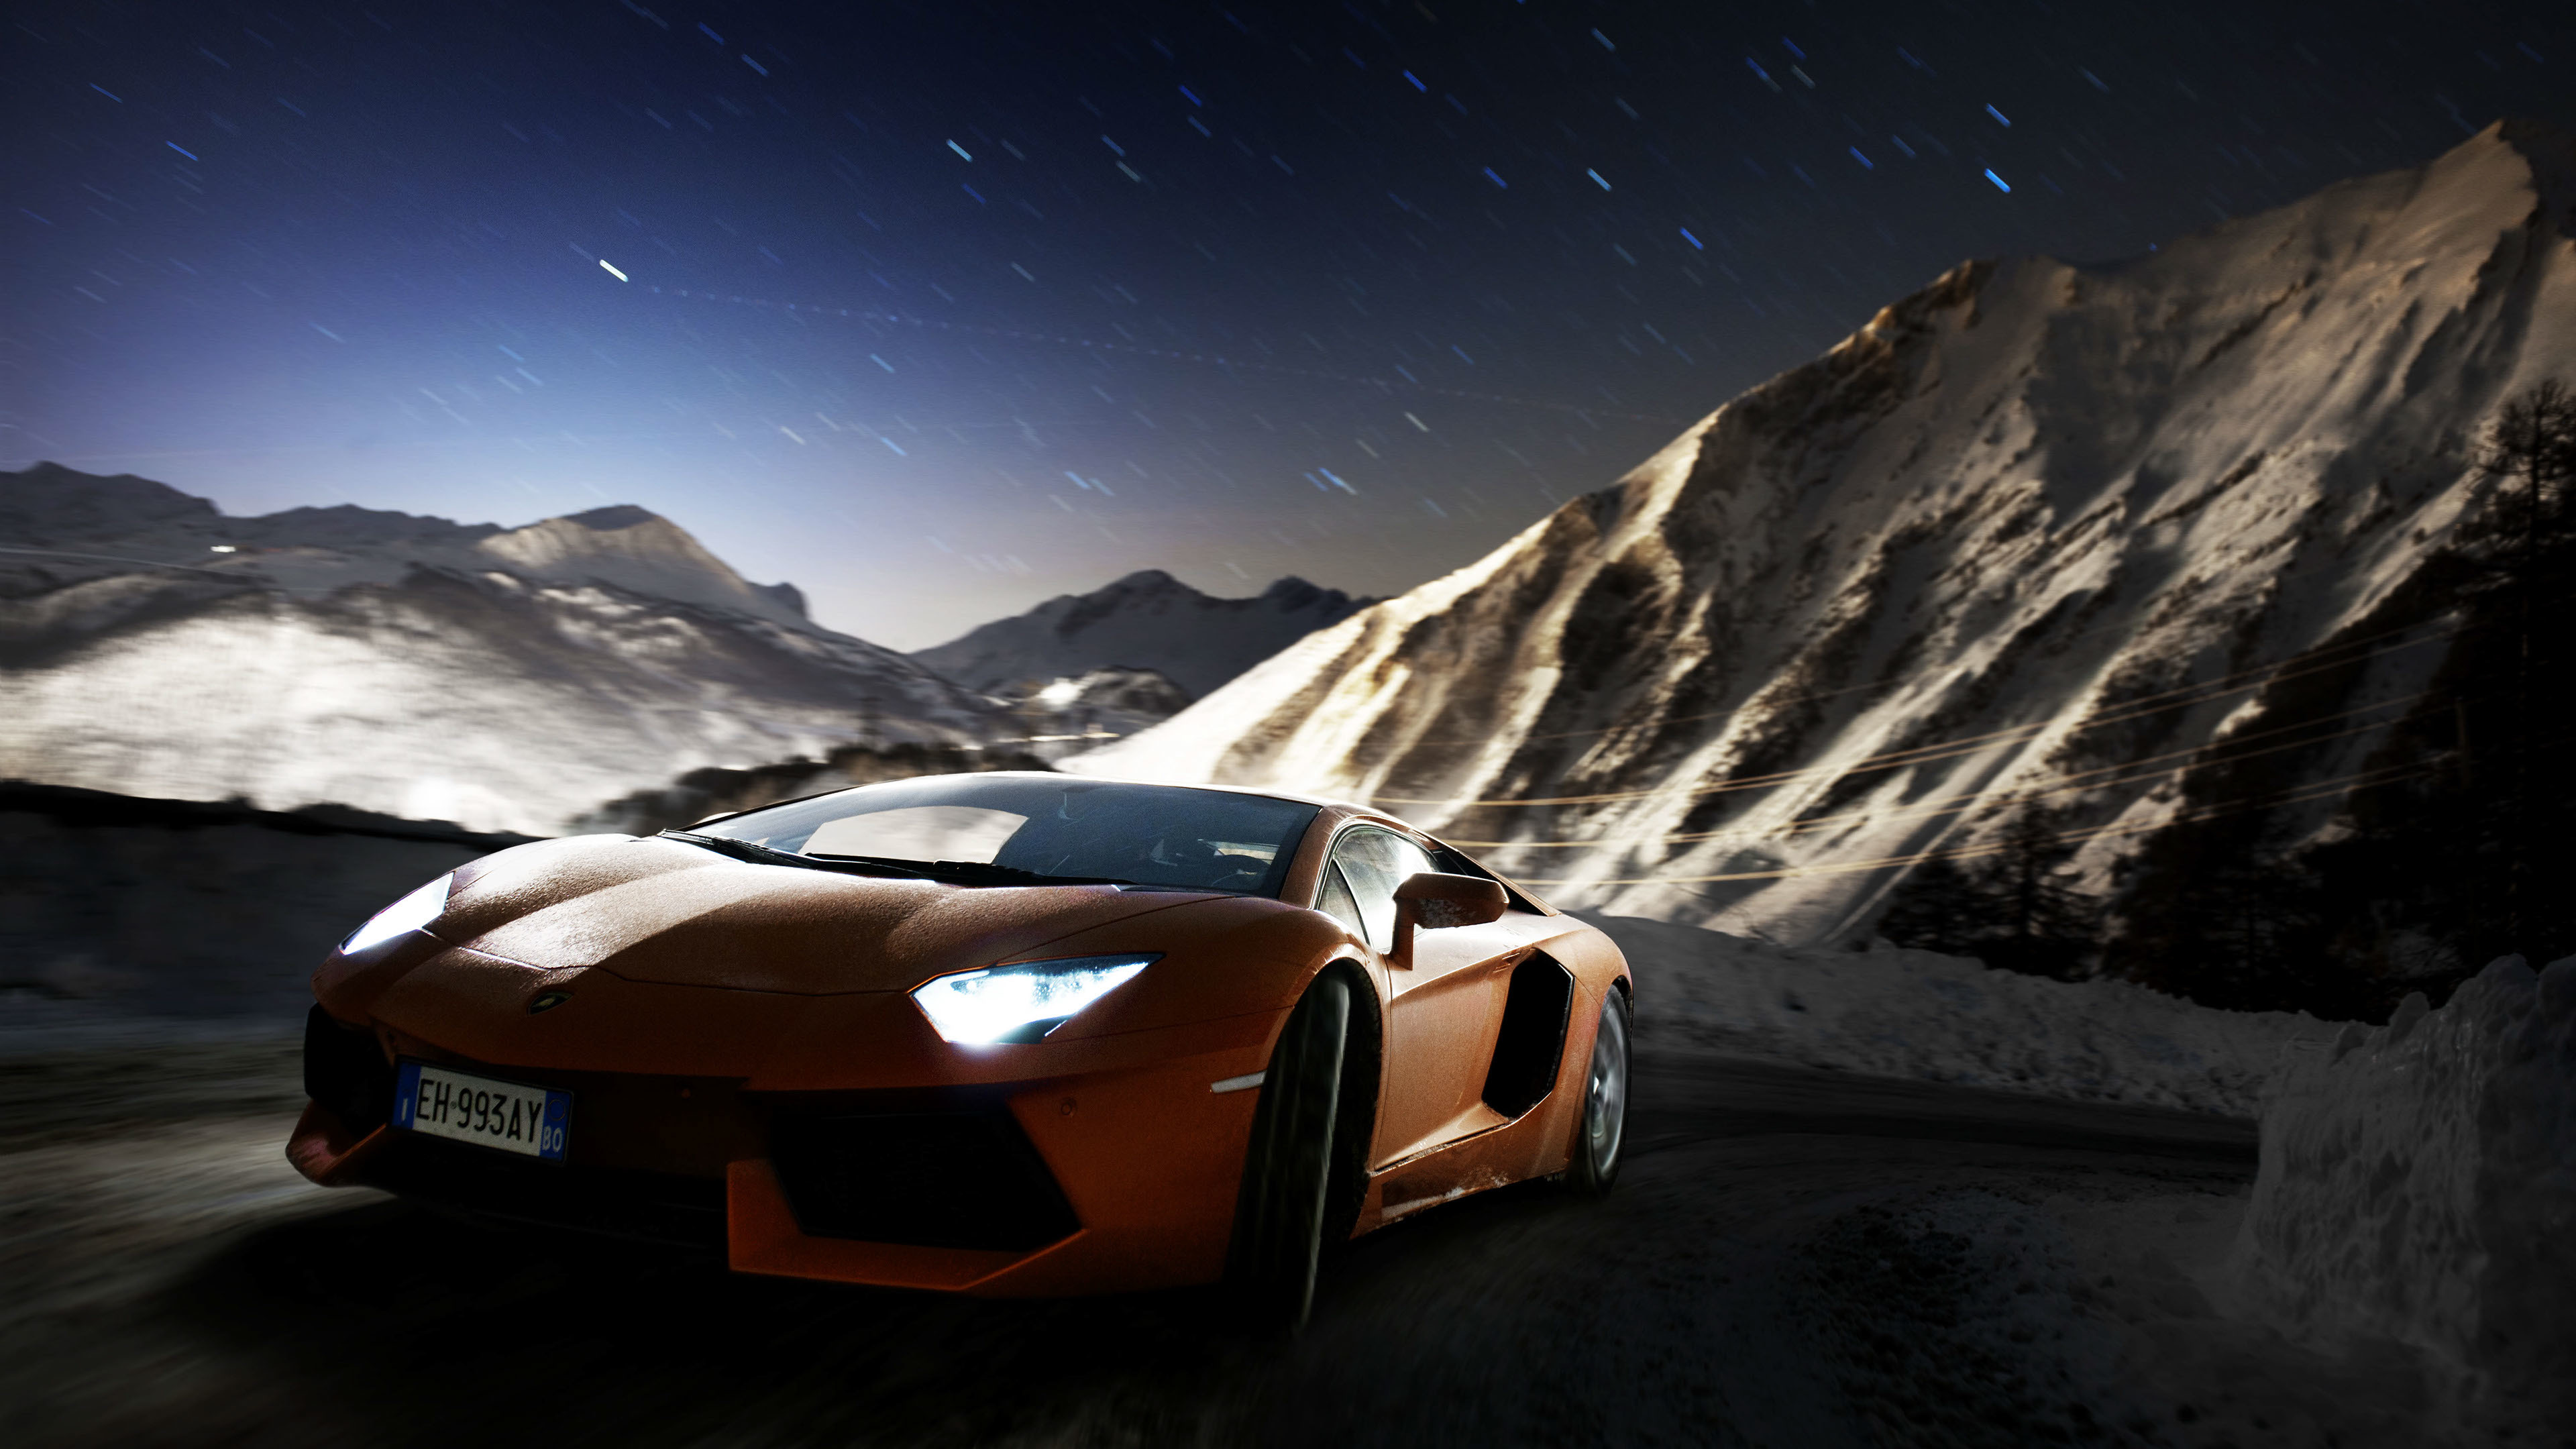 lamborghini aventador lp700 4 1539792746 - Lamborghini Aventador LP700 4 - lamborghini wallpapers, lamborghini aventador wallpapers, hd-wallpapers, cars wallpapers, behance wallpapers, 4k-wallpapers